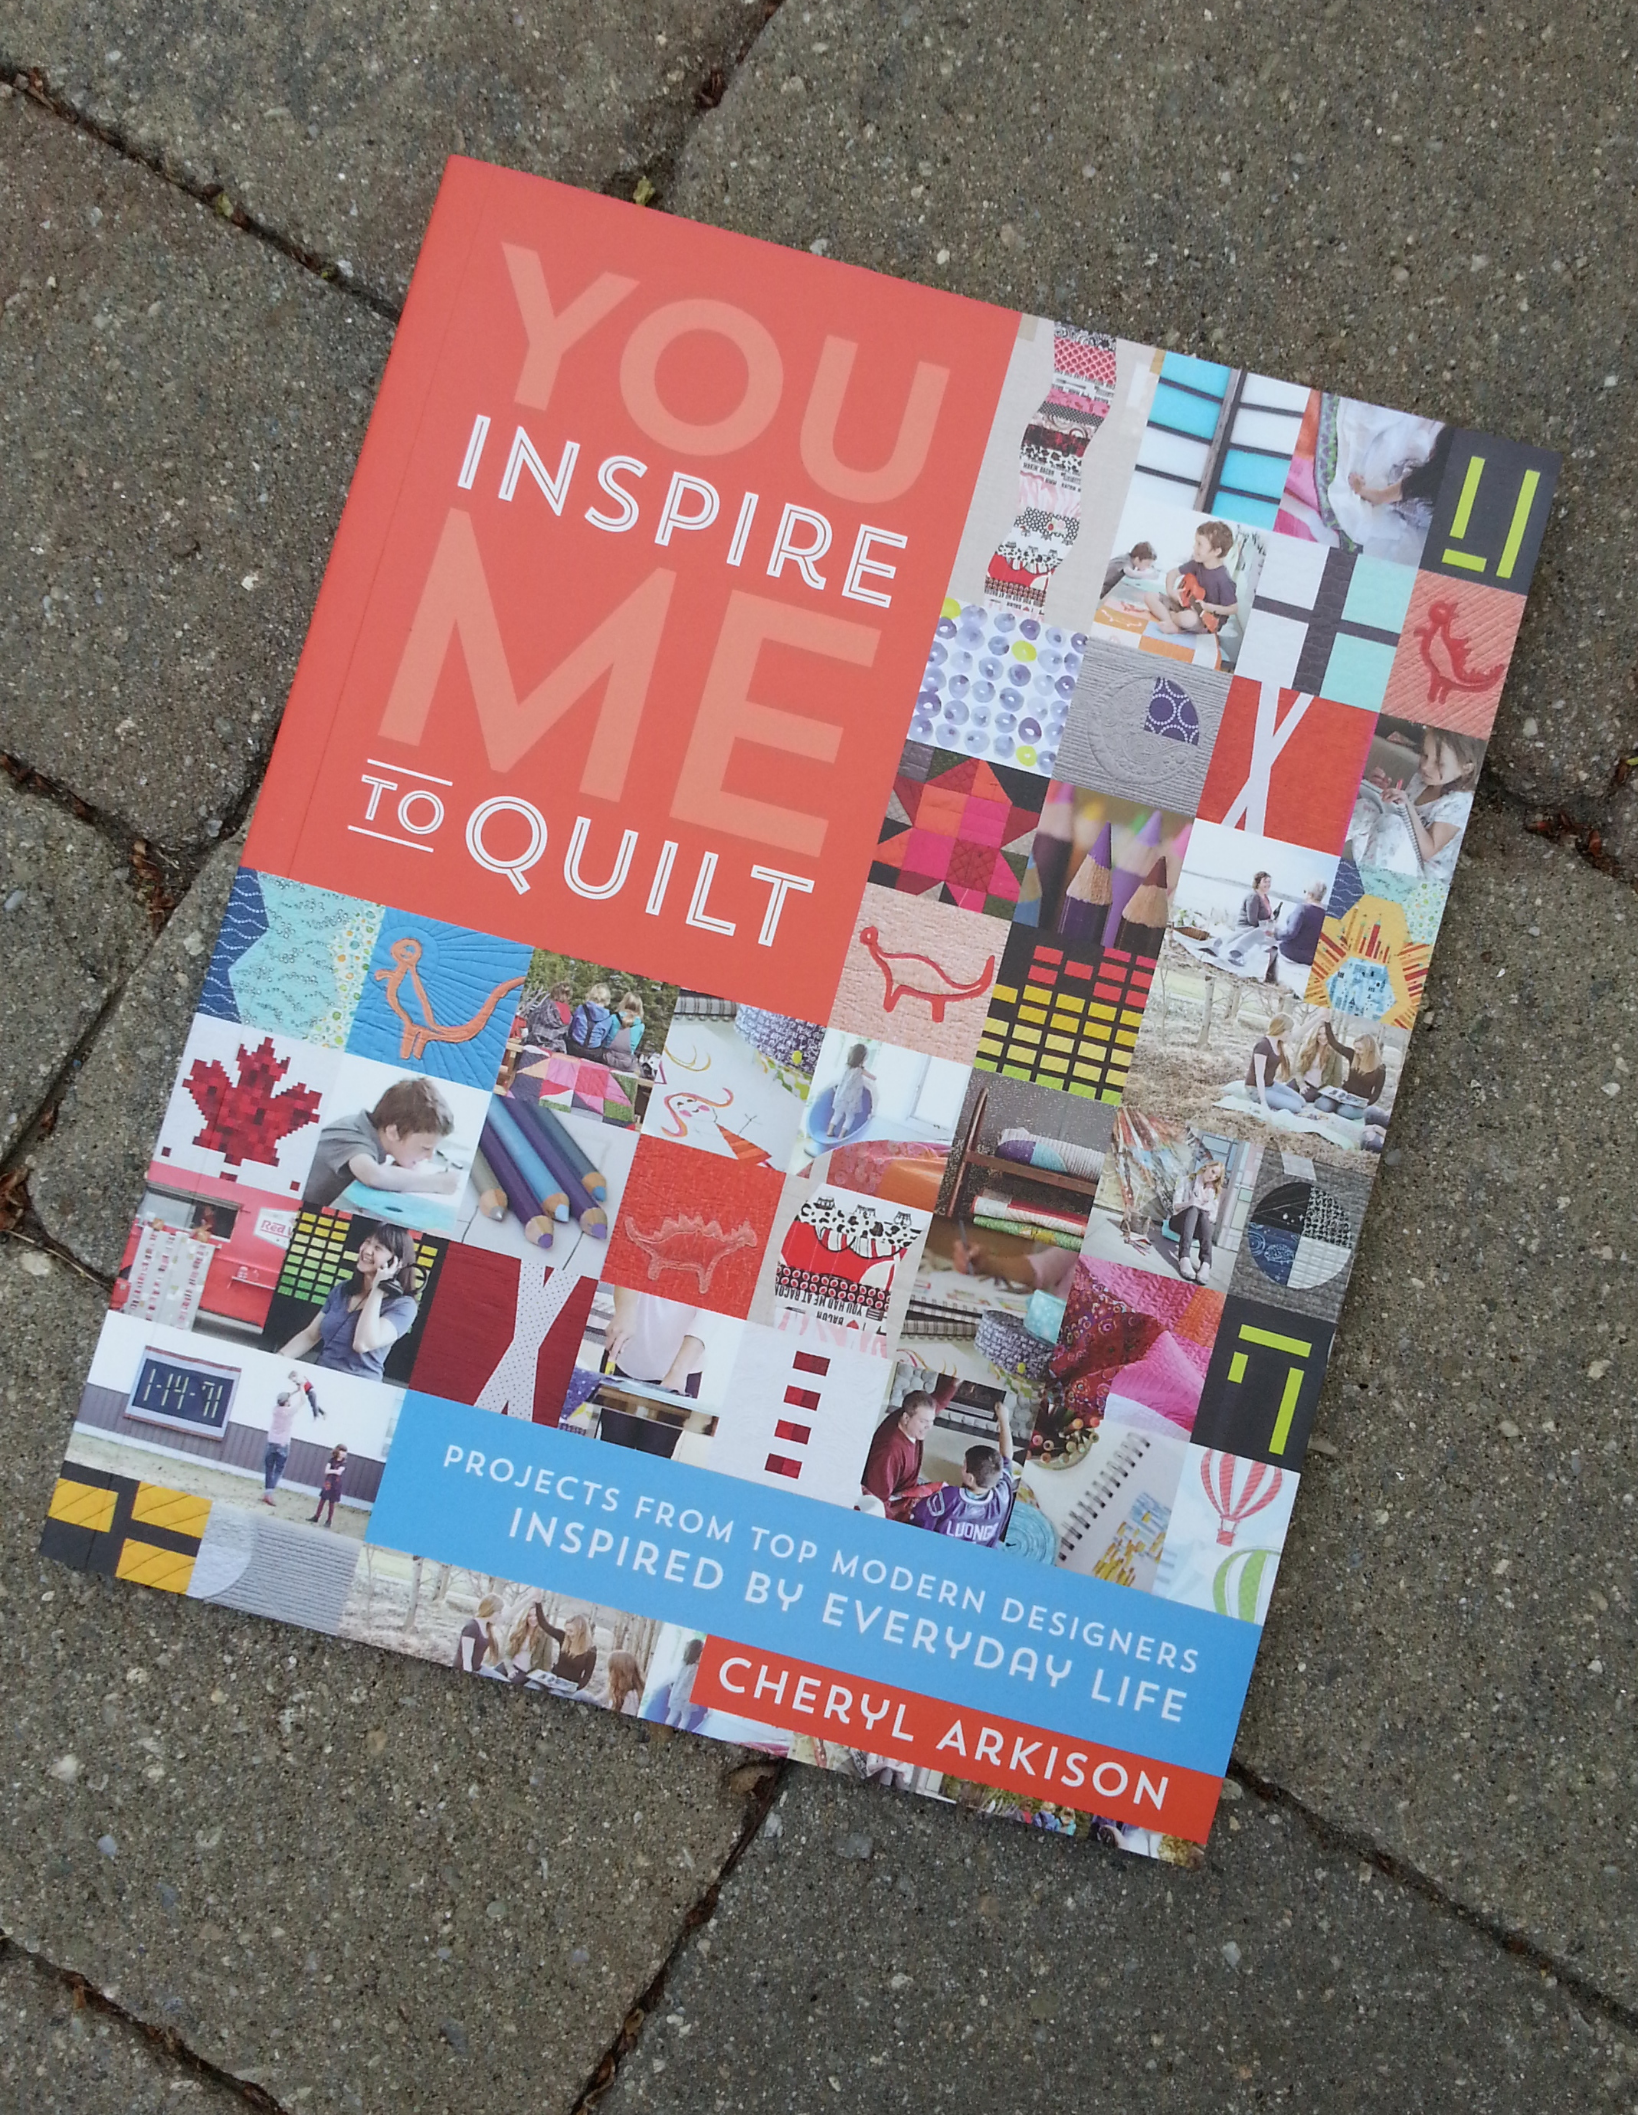 Book You Inspire Me to Quilt.jpg